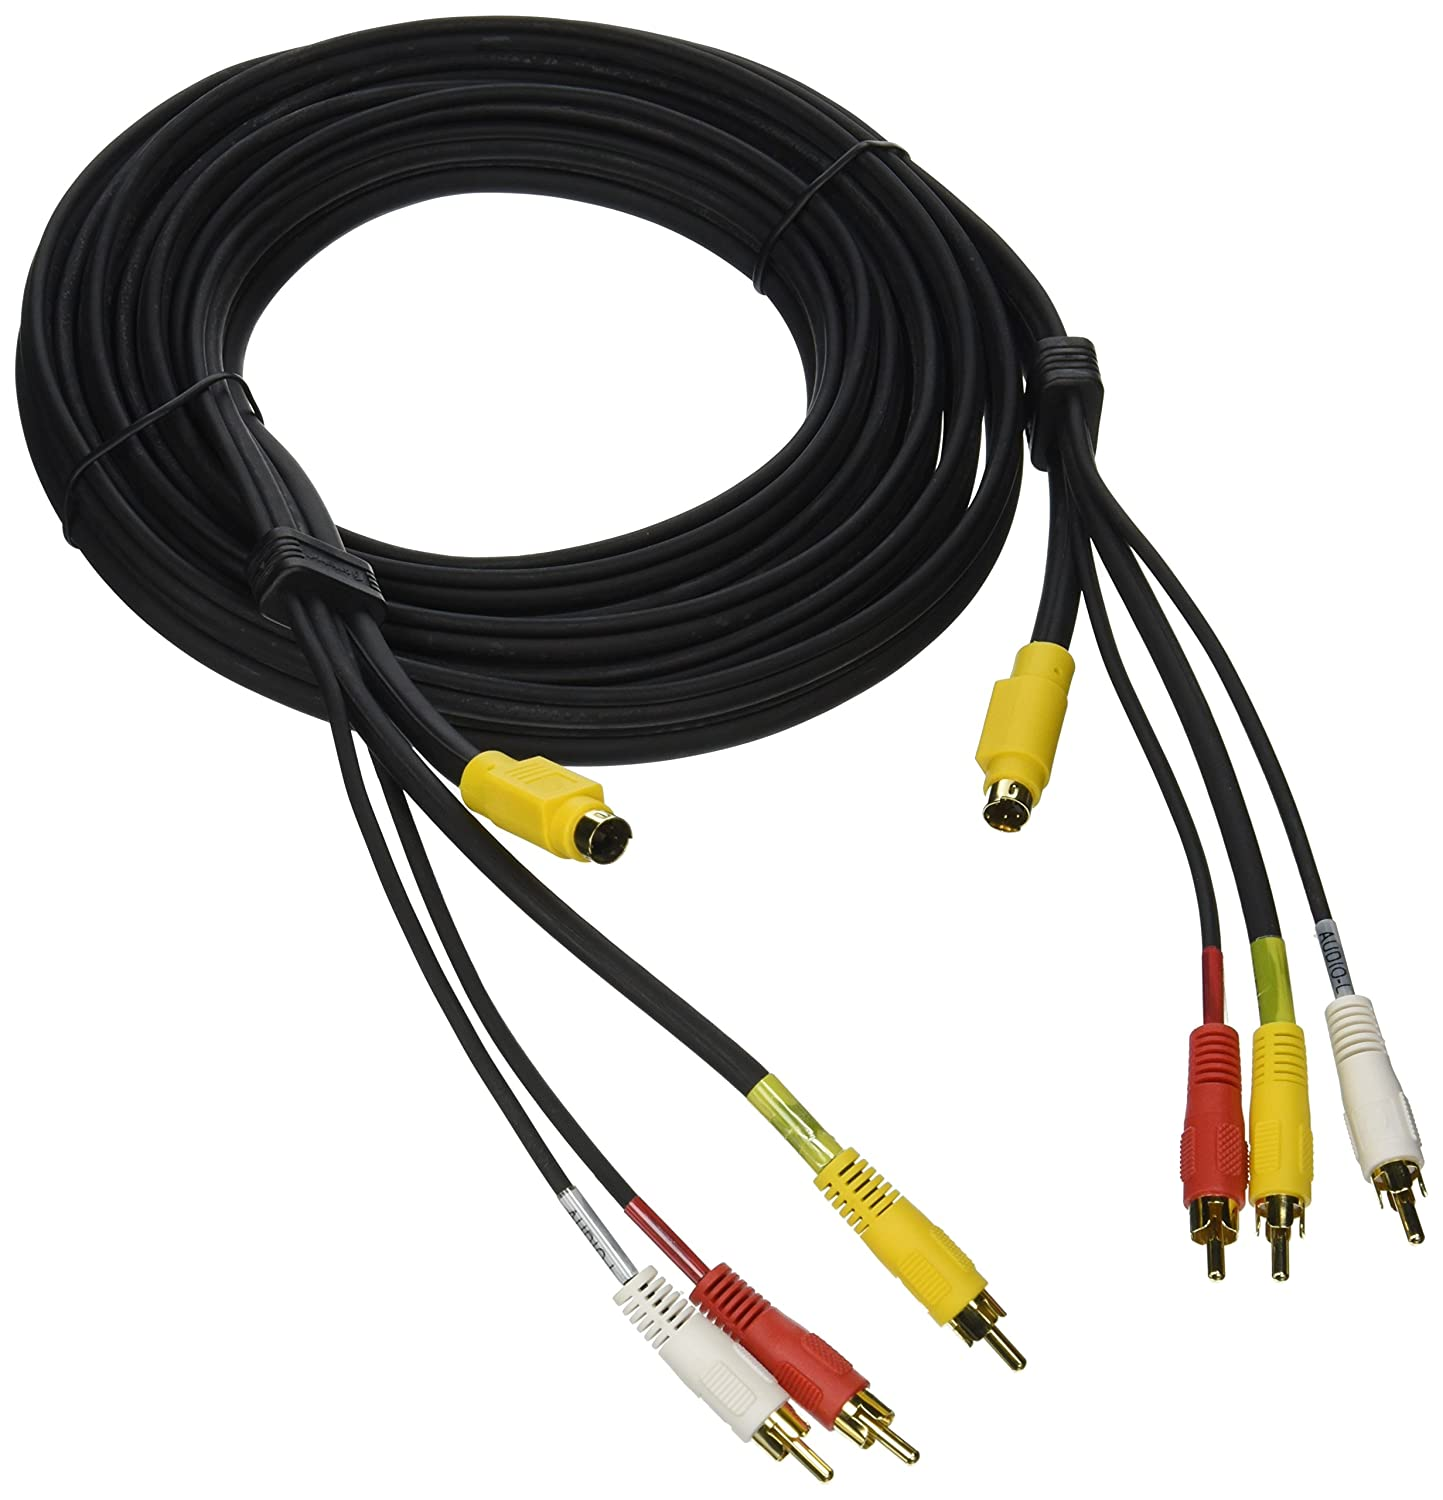 Cables To Go 29154 Value Series 4-in-1 RCA Type/S- 12 Feet Video Cable (Black) CABLES TO GO CONSIGNMENT